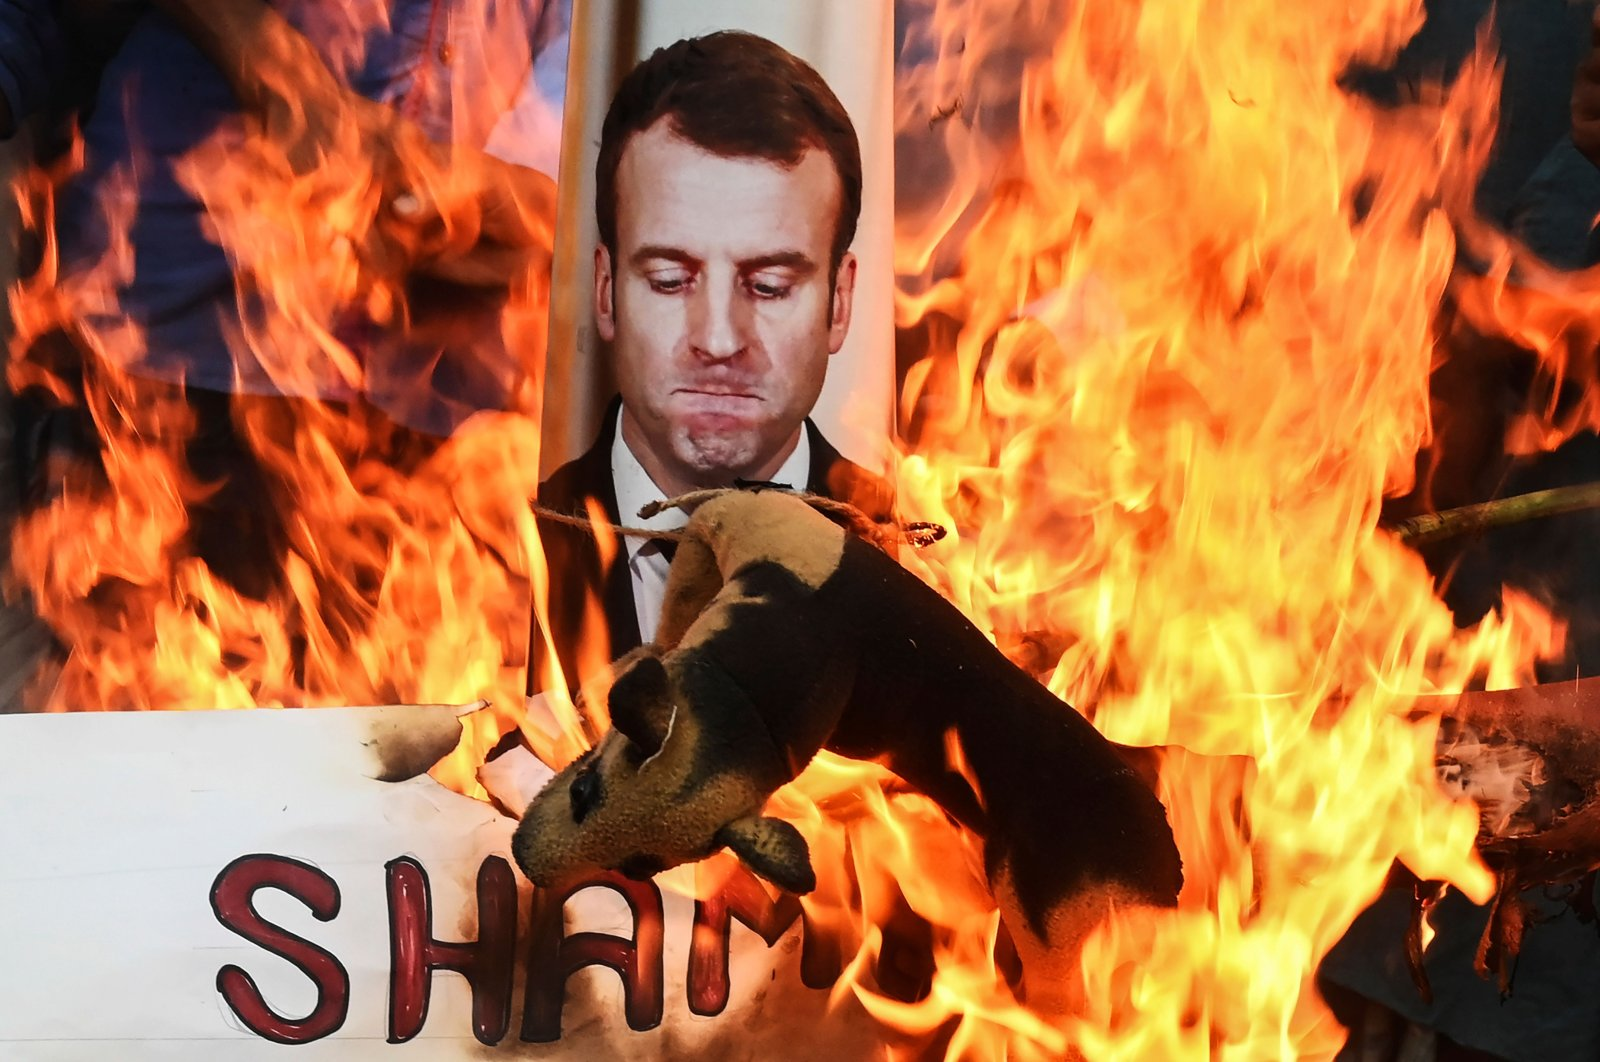 Protesters burn an effigy of French President Emmanuel Macron during an anti-France demonstration in Kolkata, India on Nov. 4, 2020. (AFP Photo)